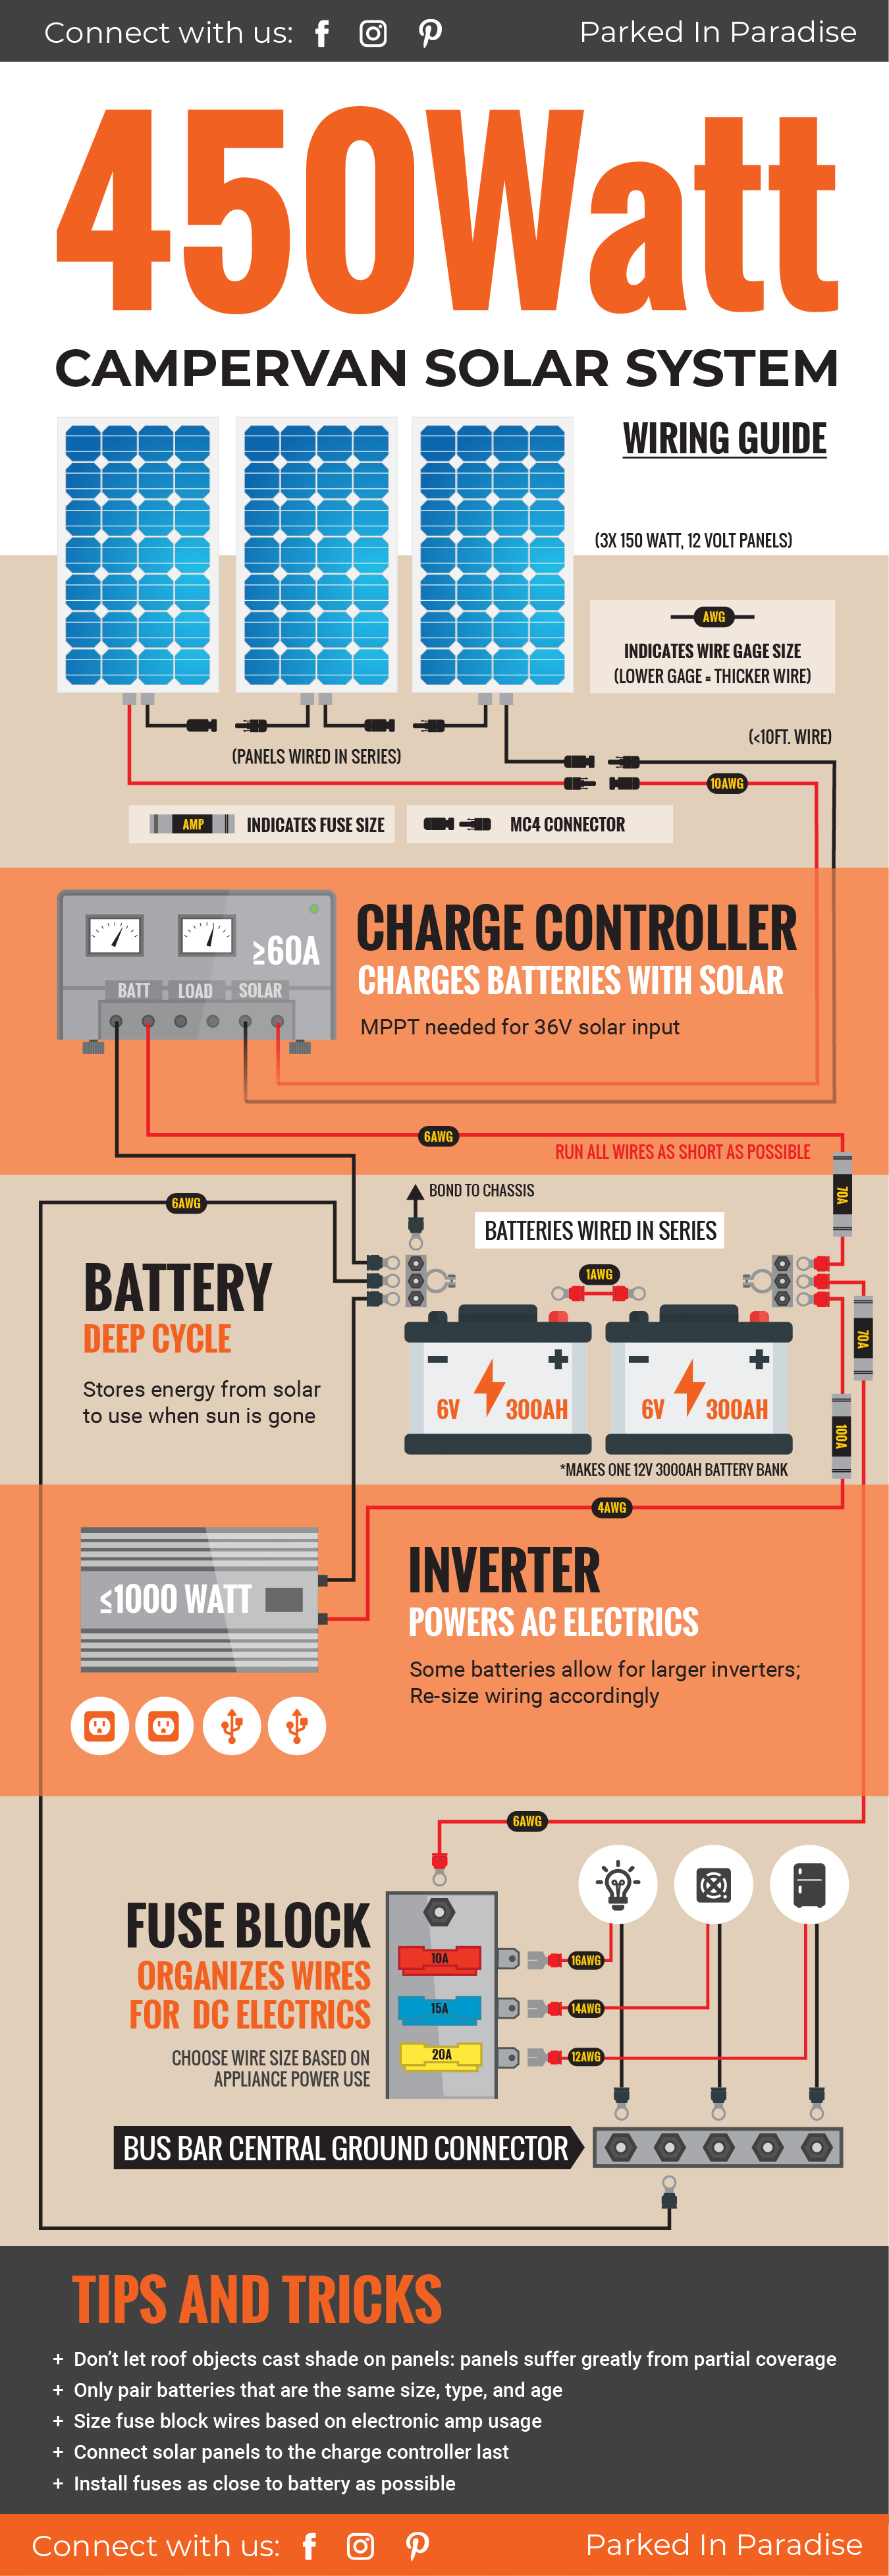 diy wiring guide for a 450 watt solar panel system perfect kit for a campervan [ 1350 x 3910 Pixel ]